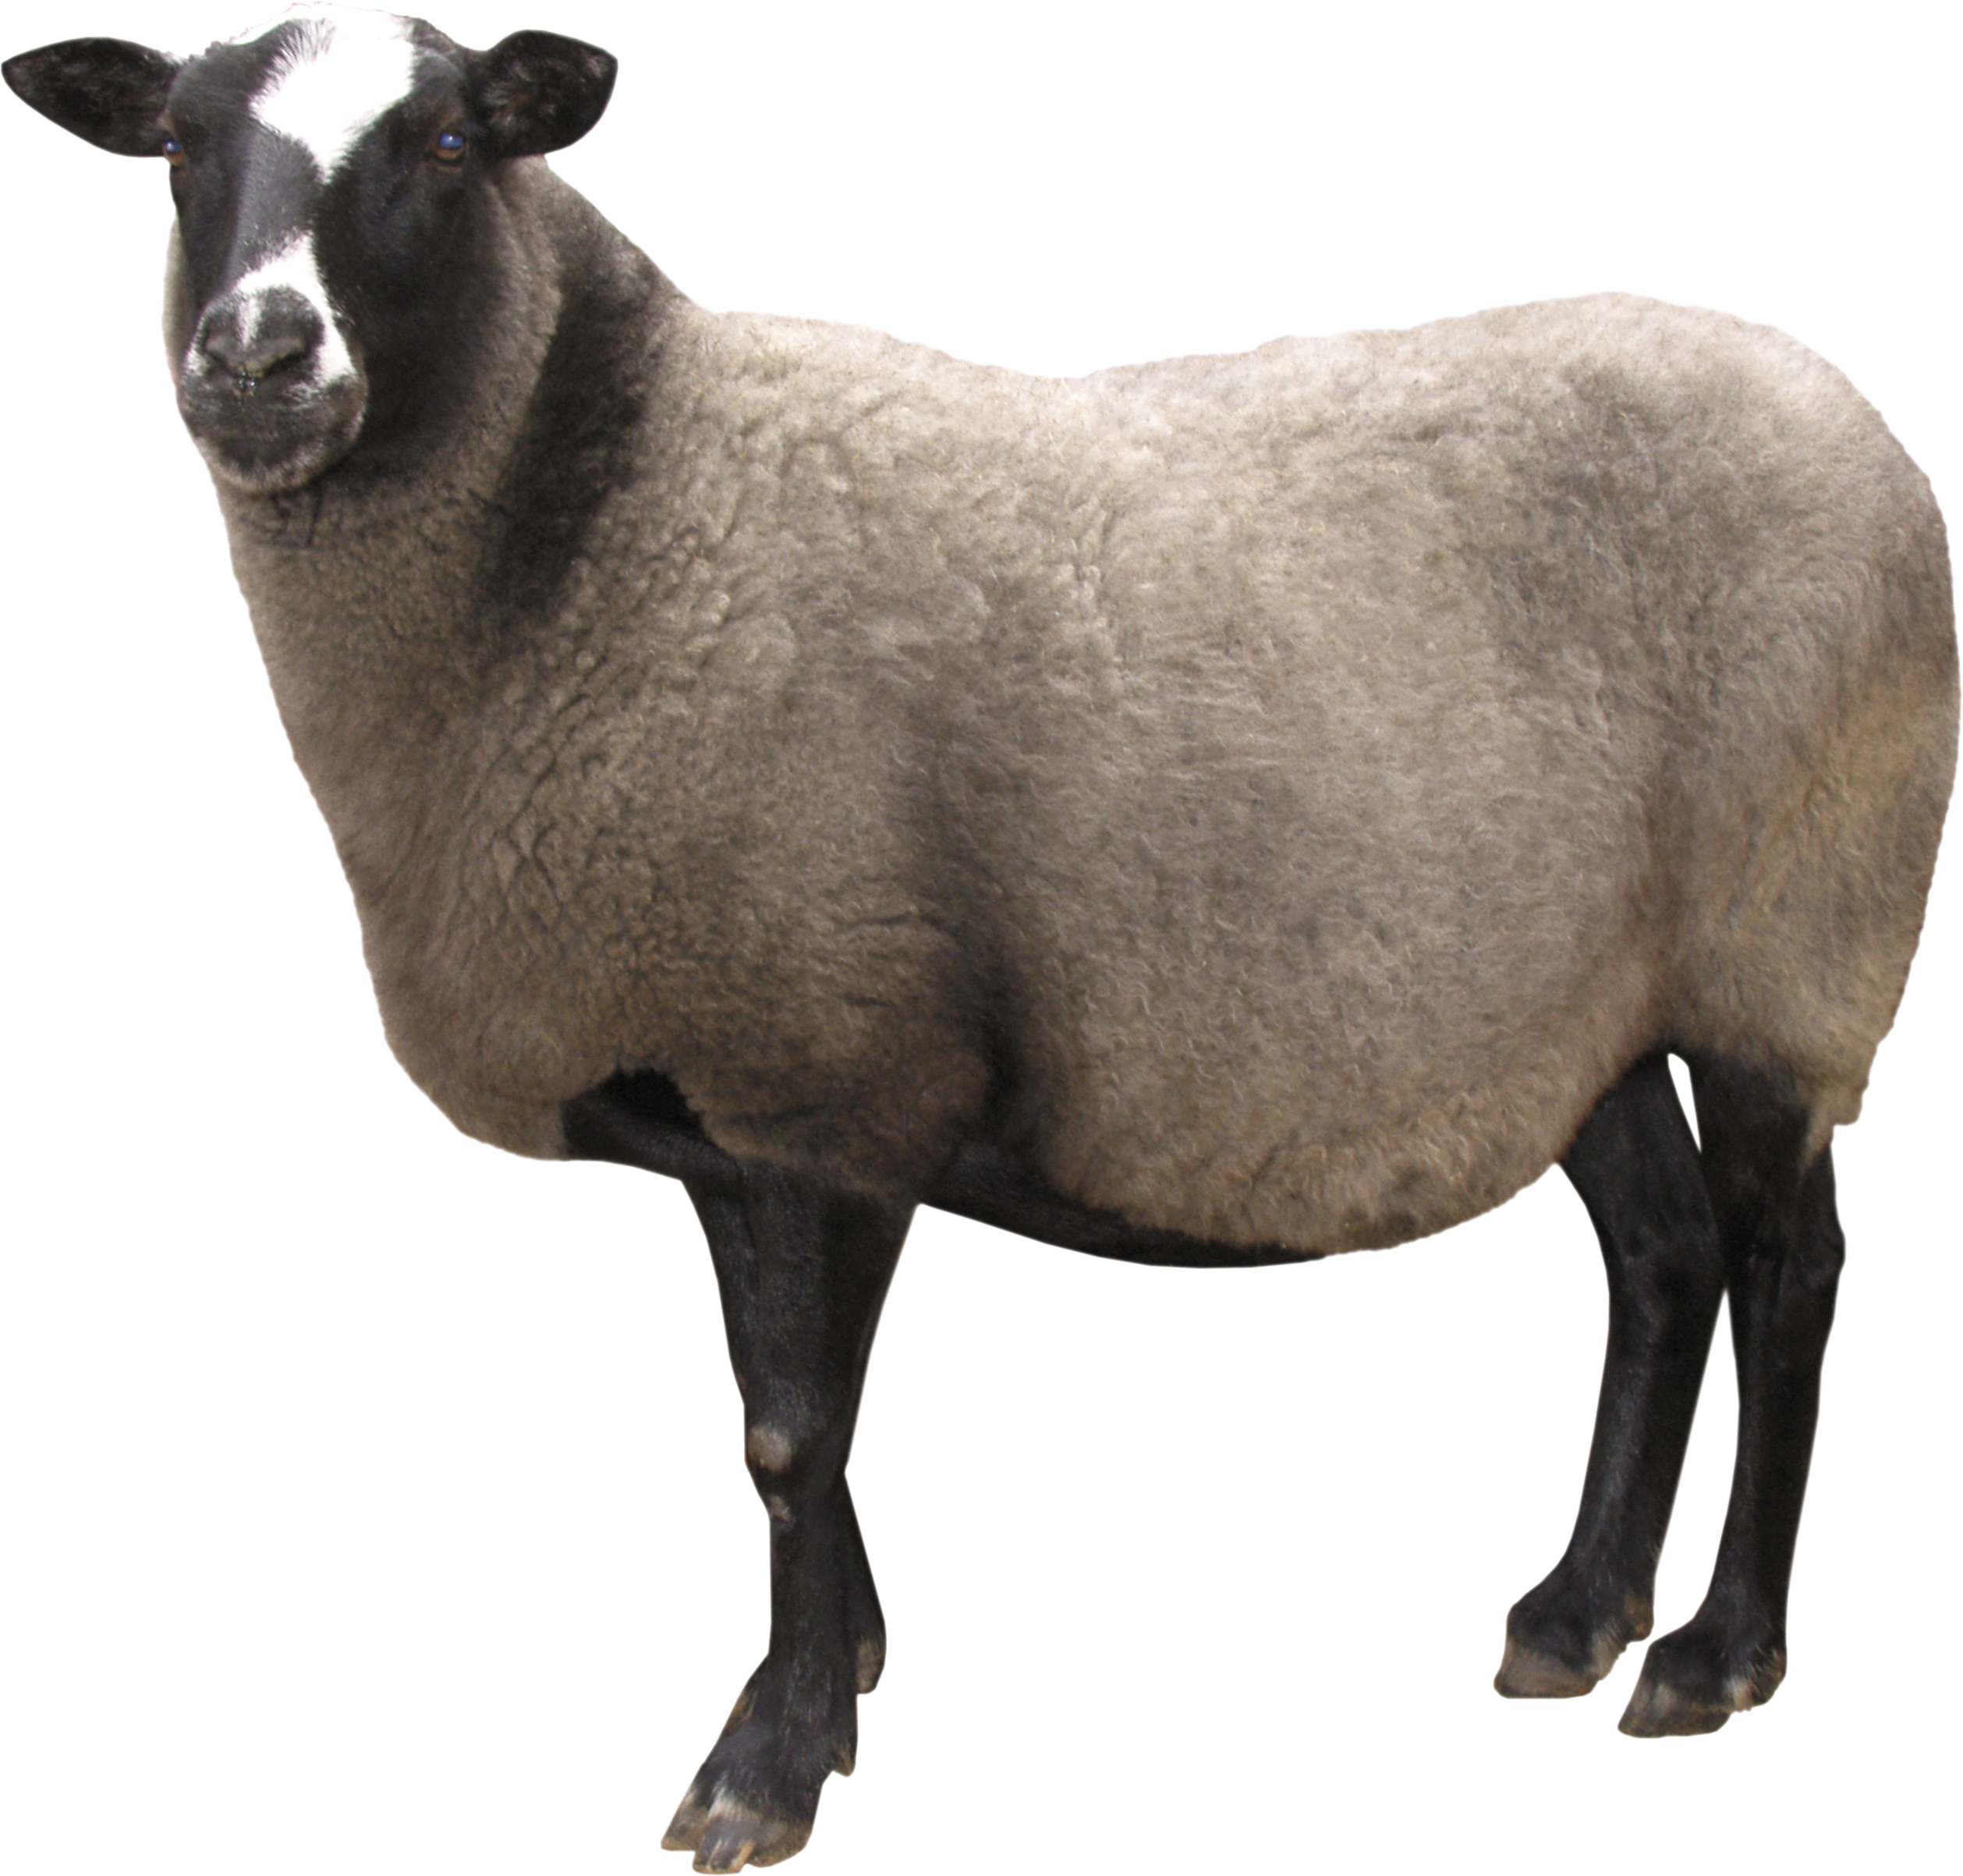 sheep PNG image - Sheep HD PNG